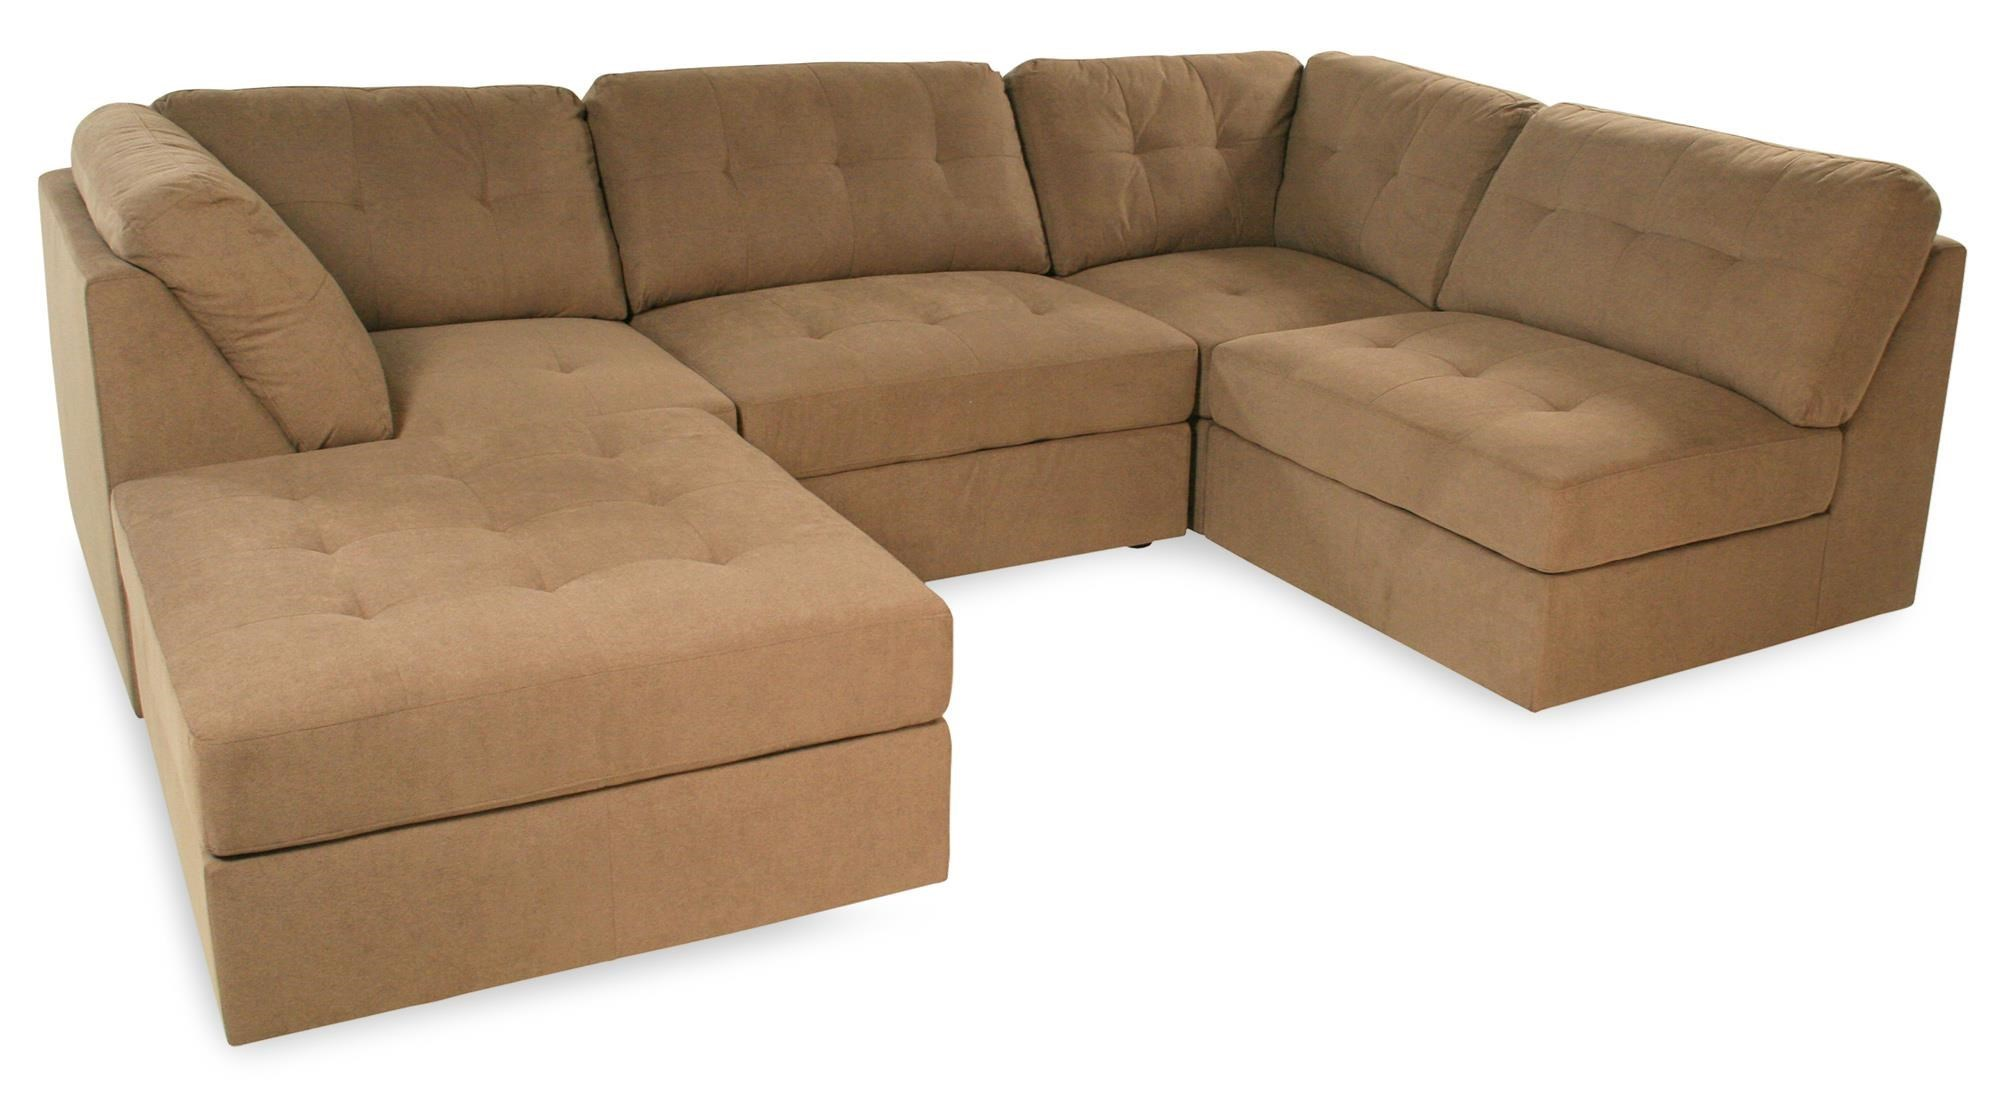 Lifestyle Sabrina Taupe Button-Tufted Sectional Sofa  sc 1 st  Rotmans : rotmans sectionals - Sectionals, Sofas & Couches